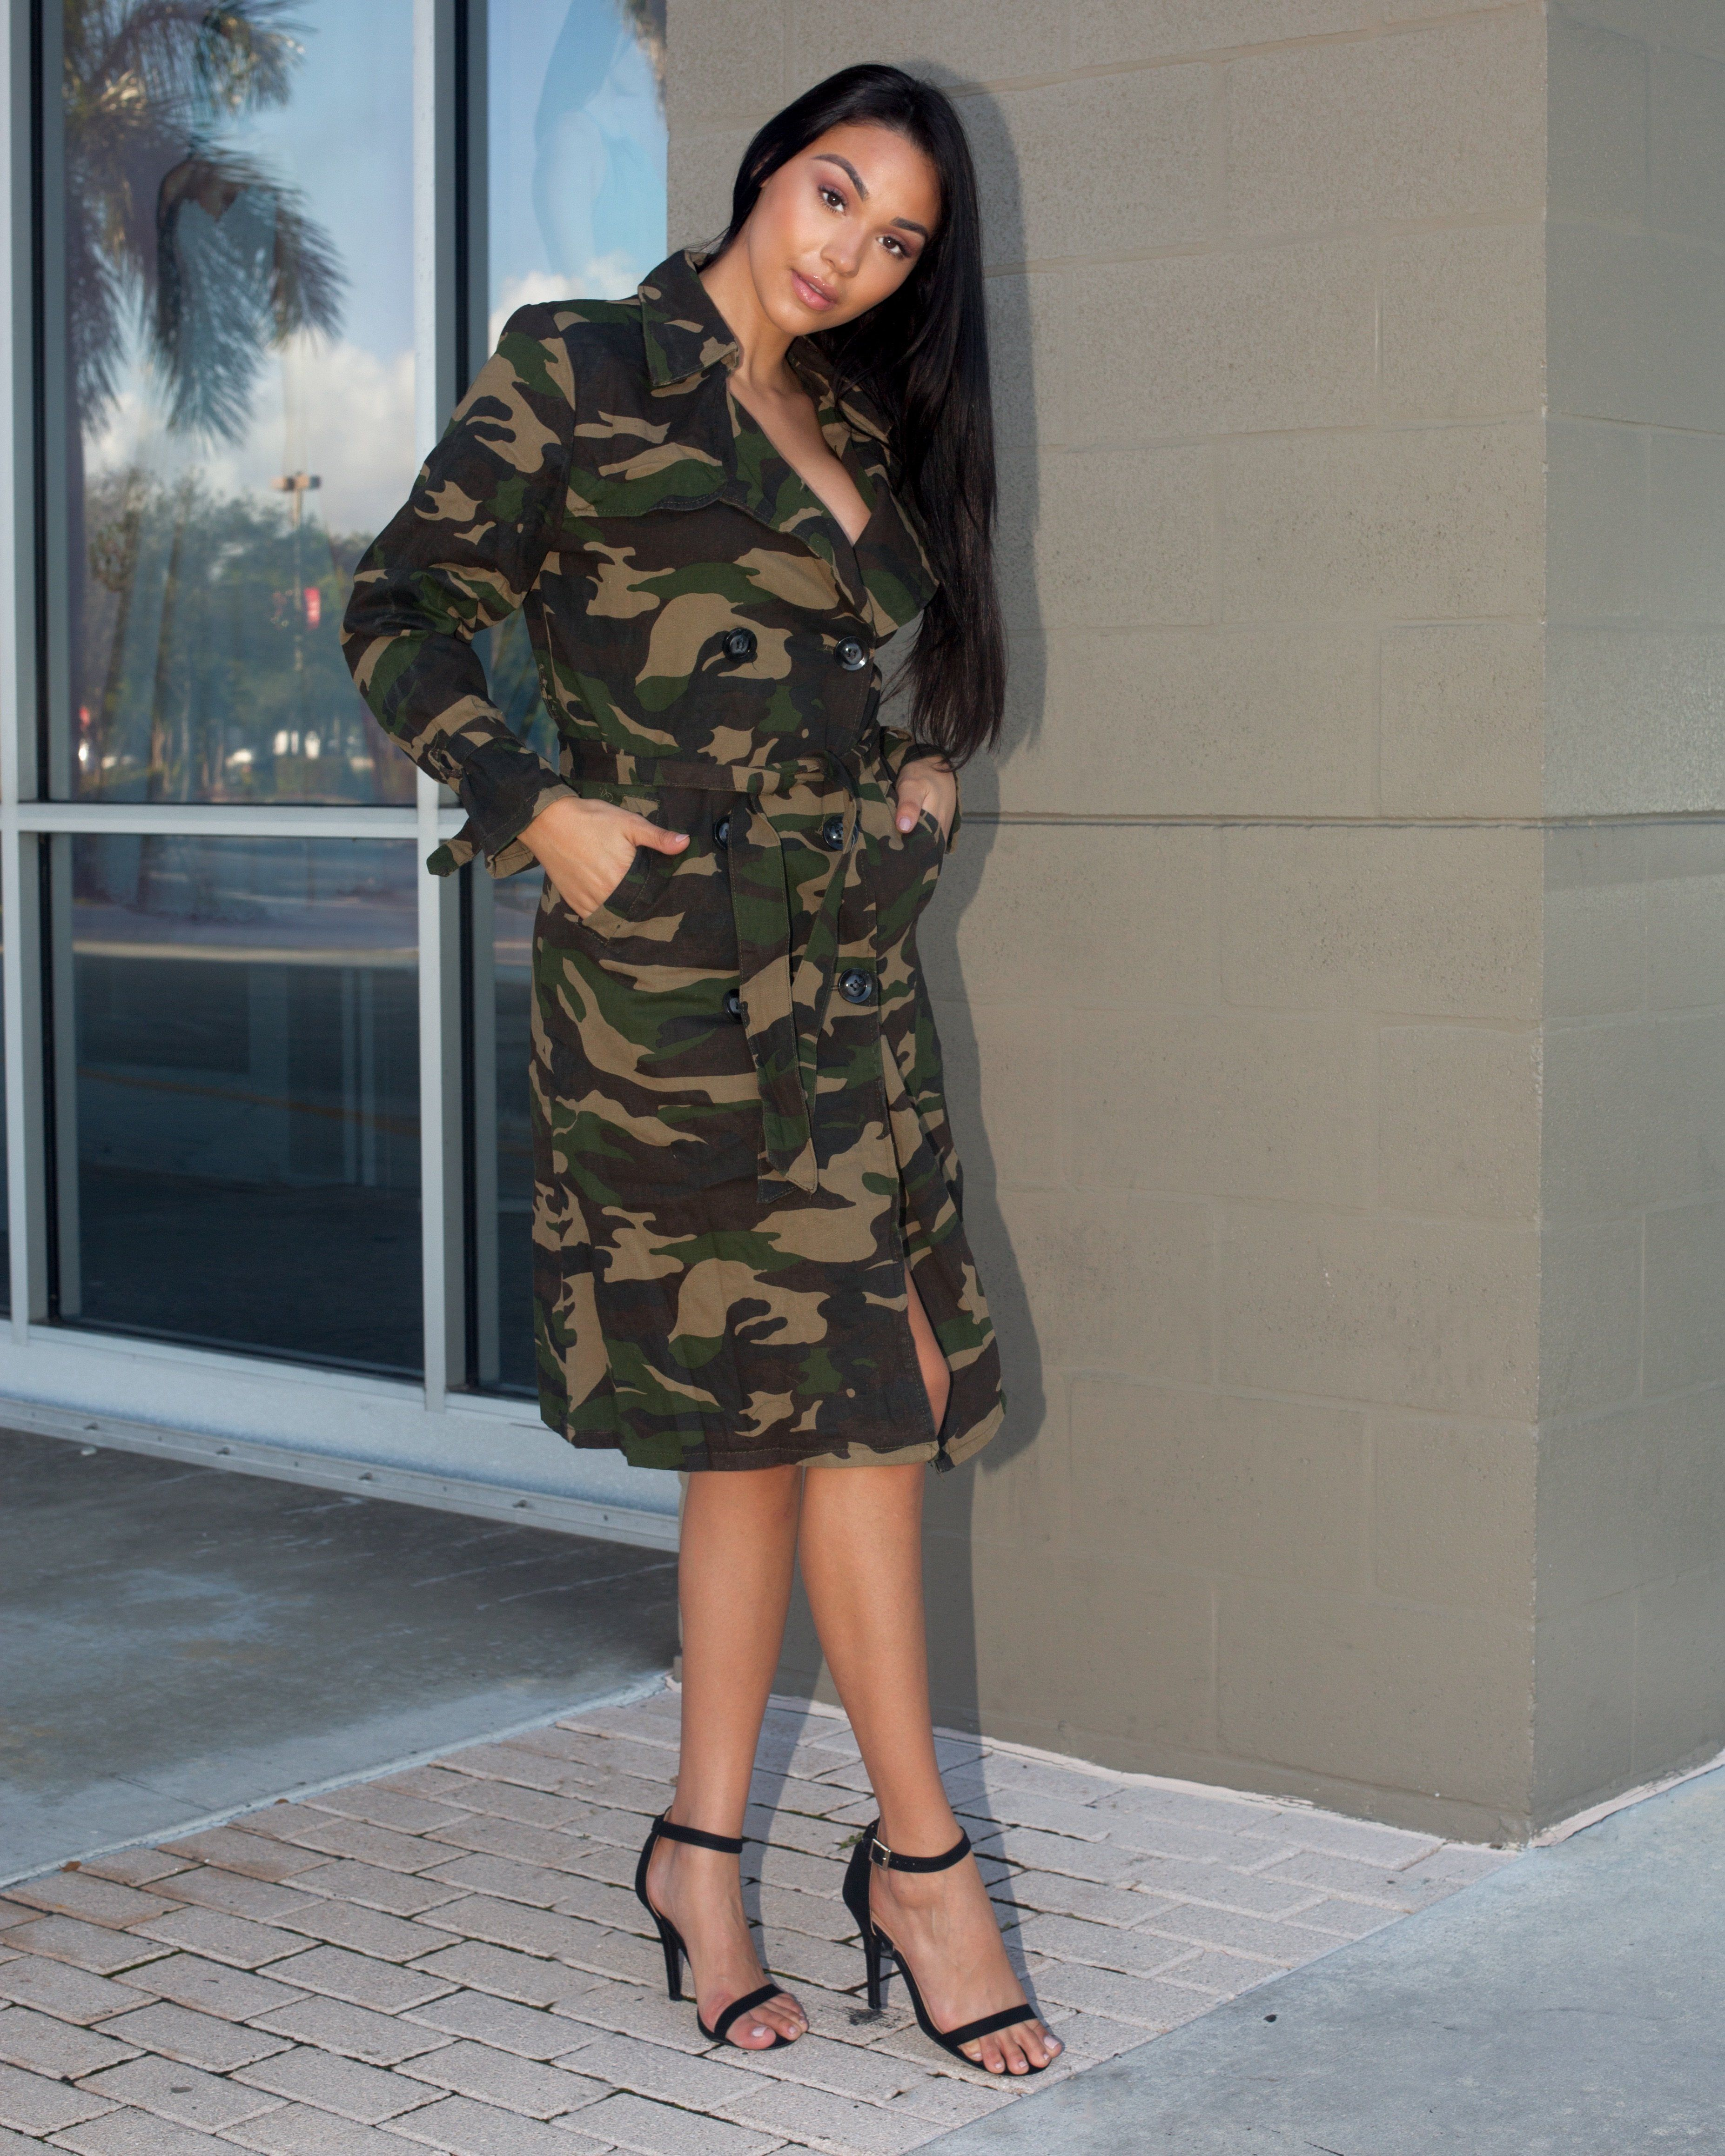 24ed2d8f2316a Mel - Camo Dress Jacket | Semai House Of Fashion - Dresses, club ...